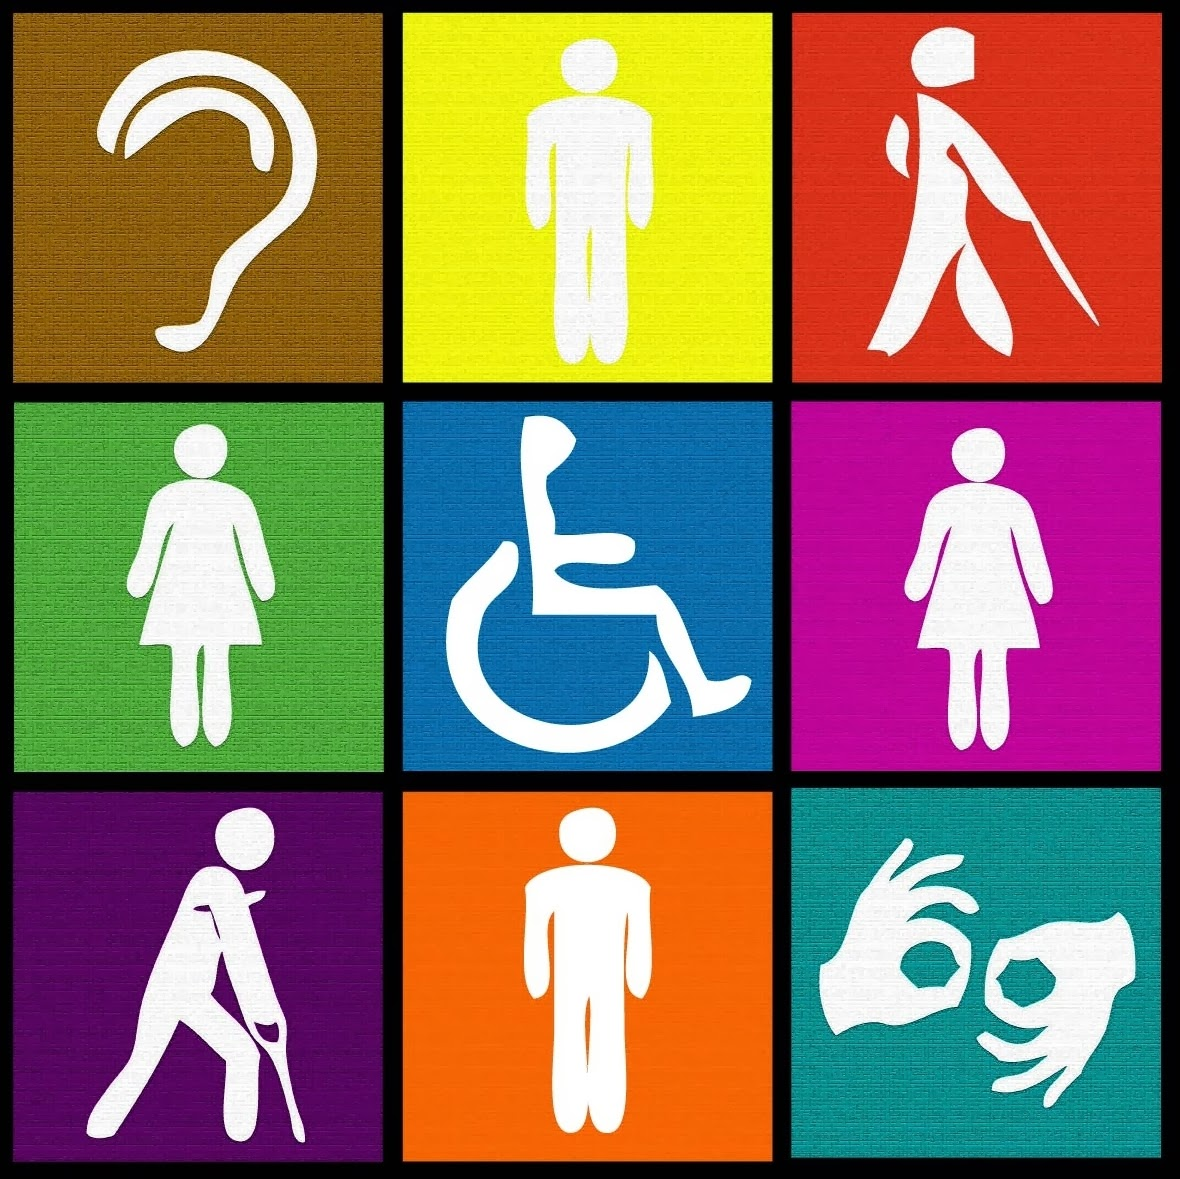 Icono Baño Minusvalidos:Persons with Disabilities